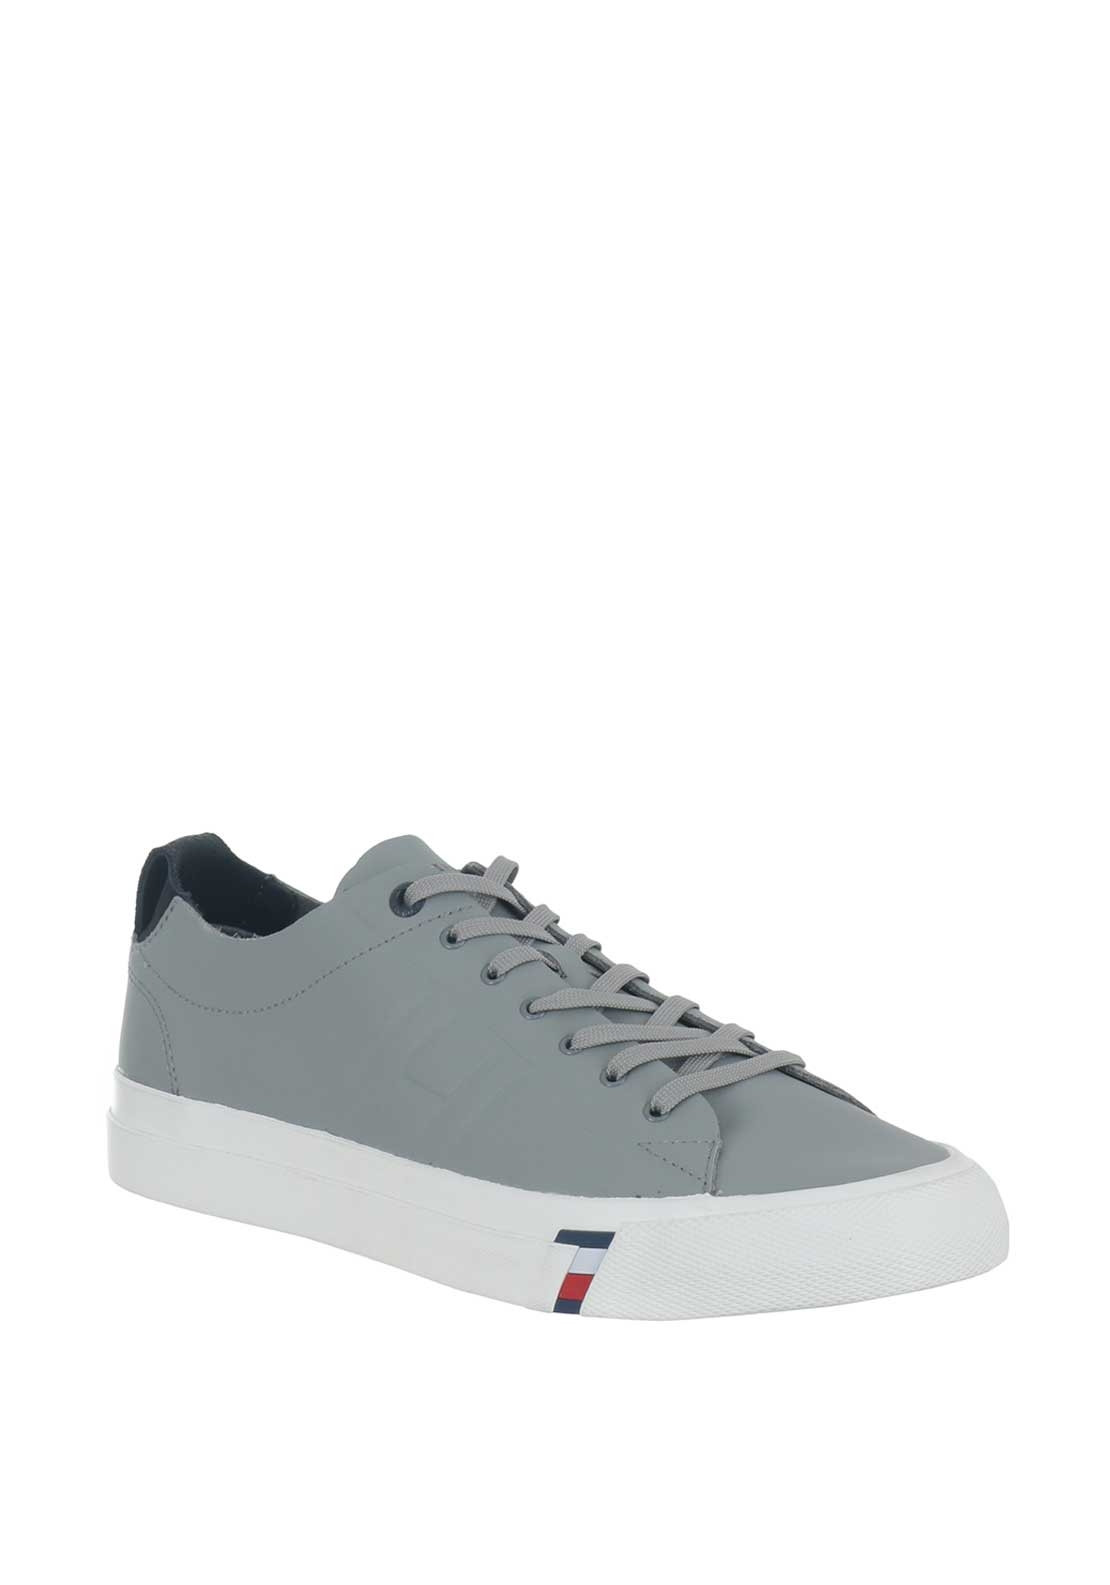 Tommy Hilfiger Men's Leather Trainers, Grey